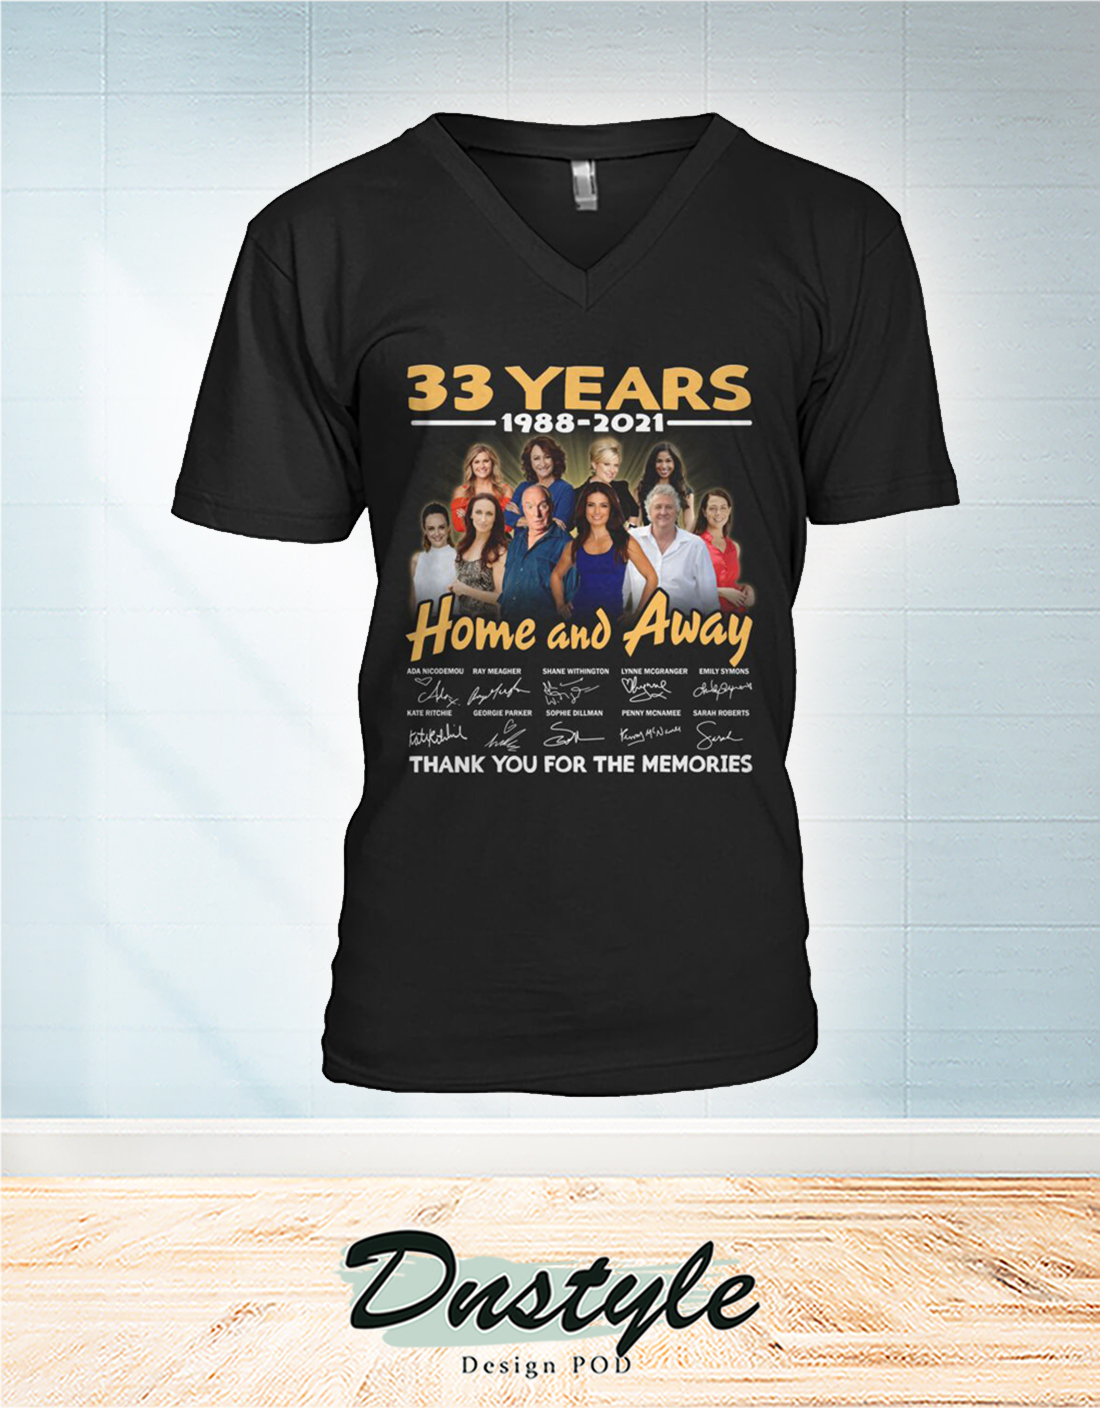 Home and away 33 years thank you for the memories v-neck